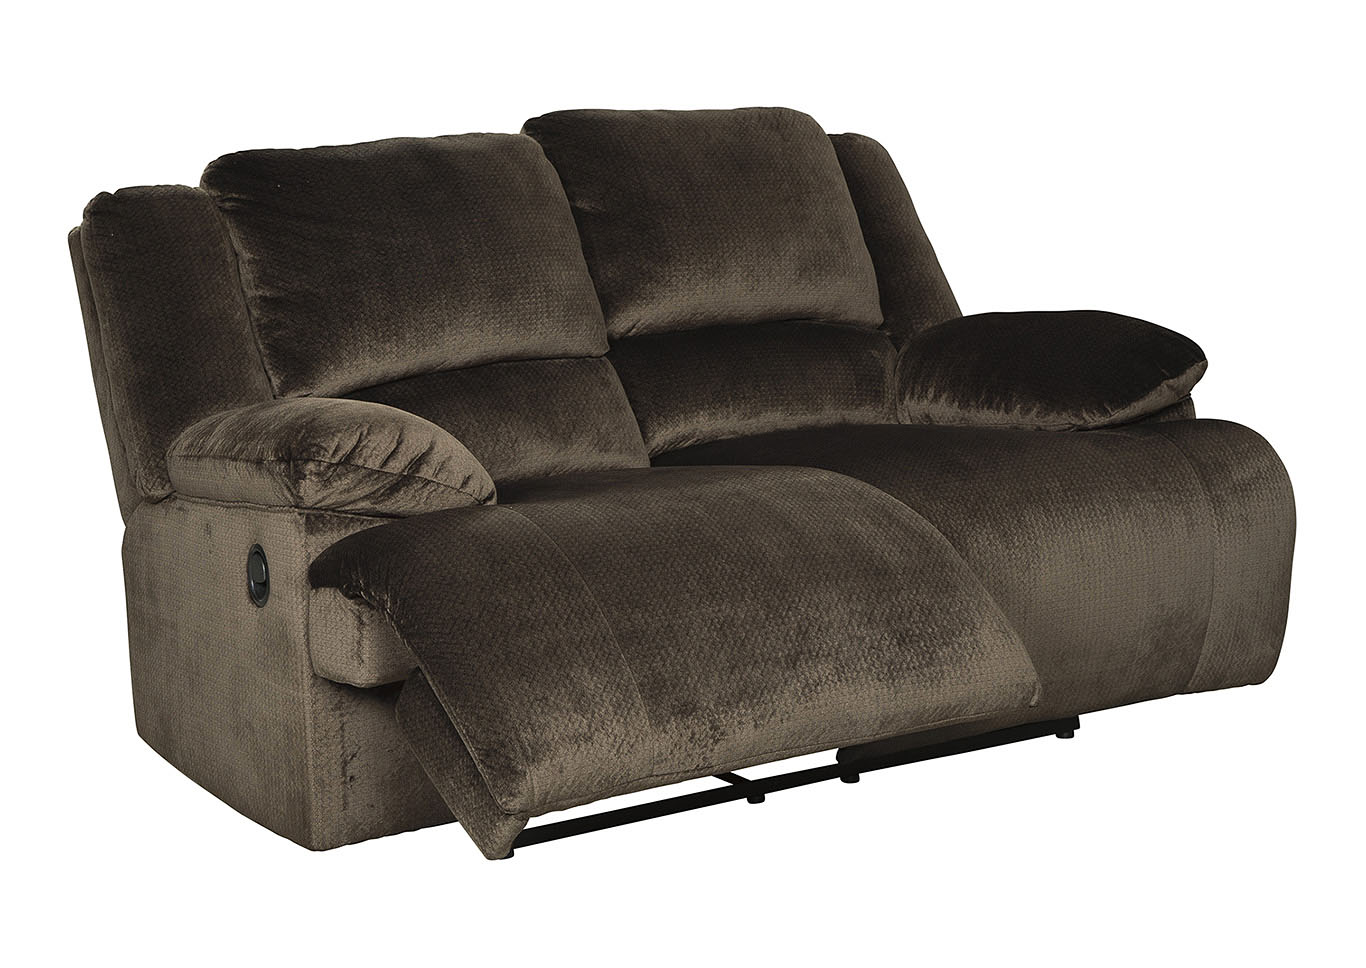 Clonmel Power Reclining Loveseat,Signature Design By Ashley